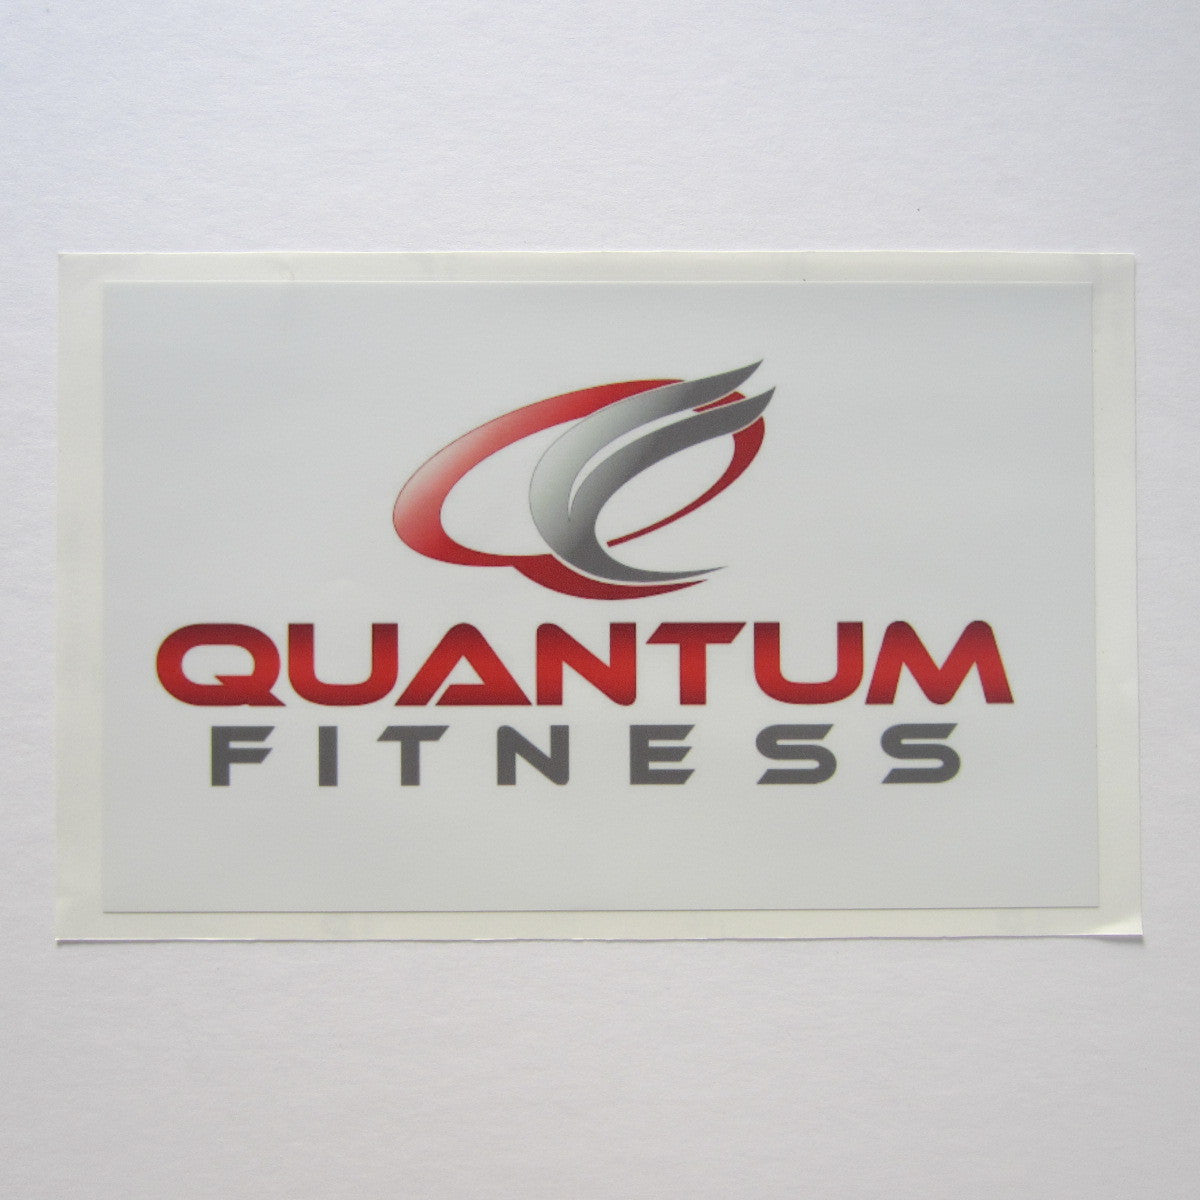 "Quantum Fitness Shroud Decal 11"" x 7"""